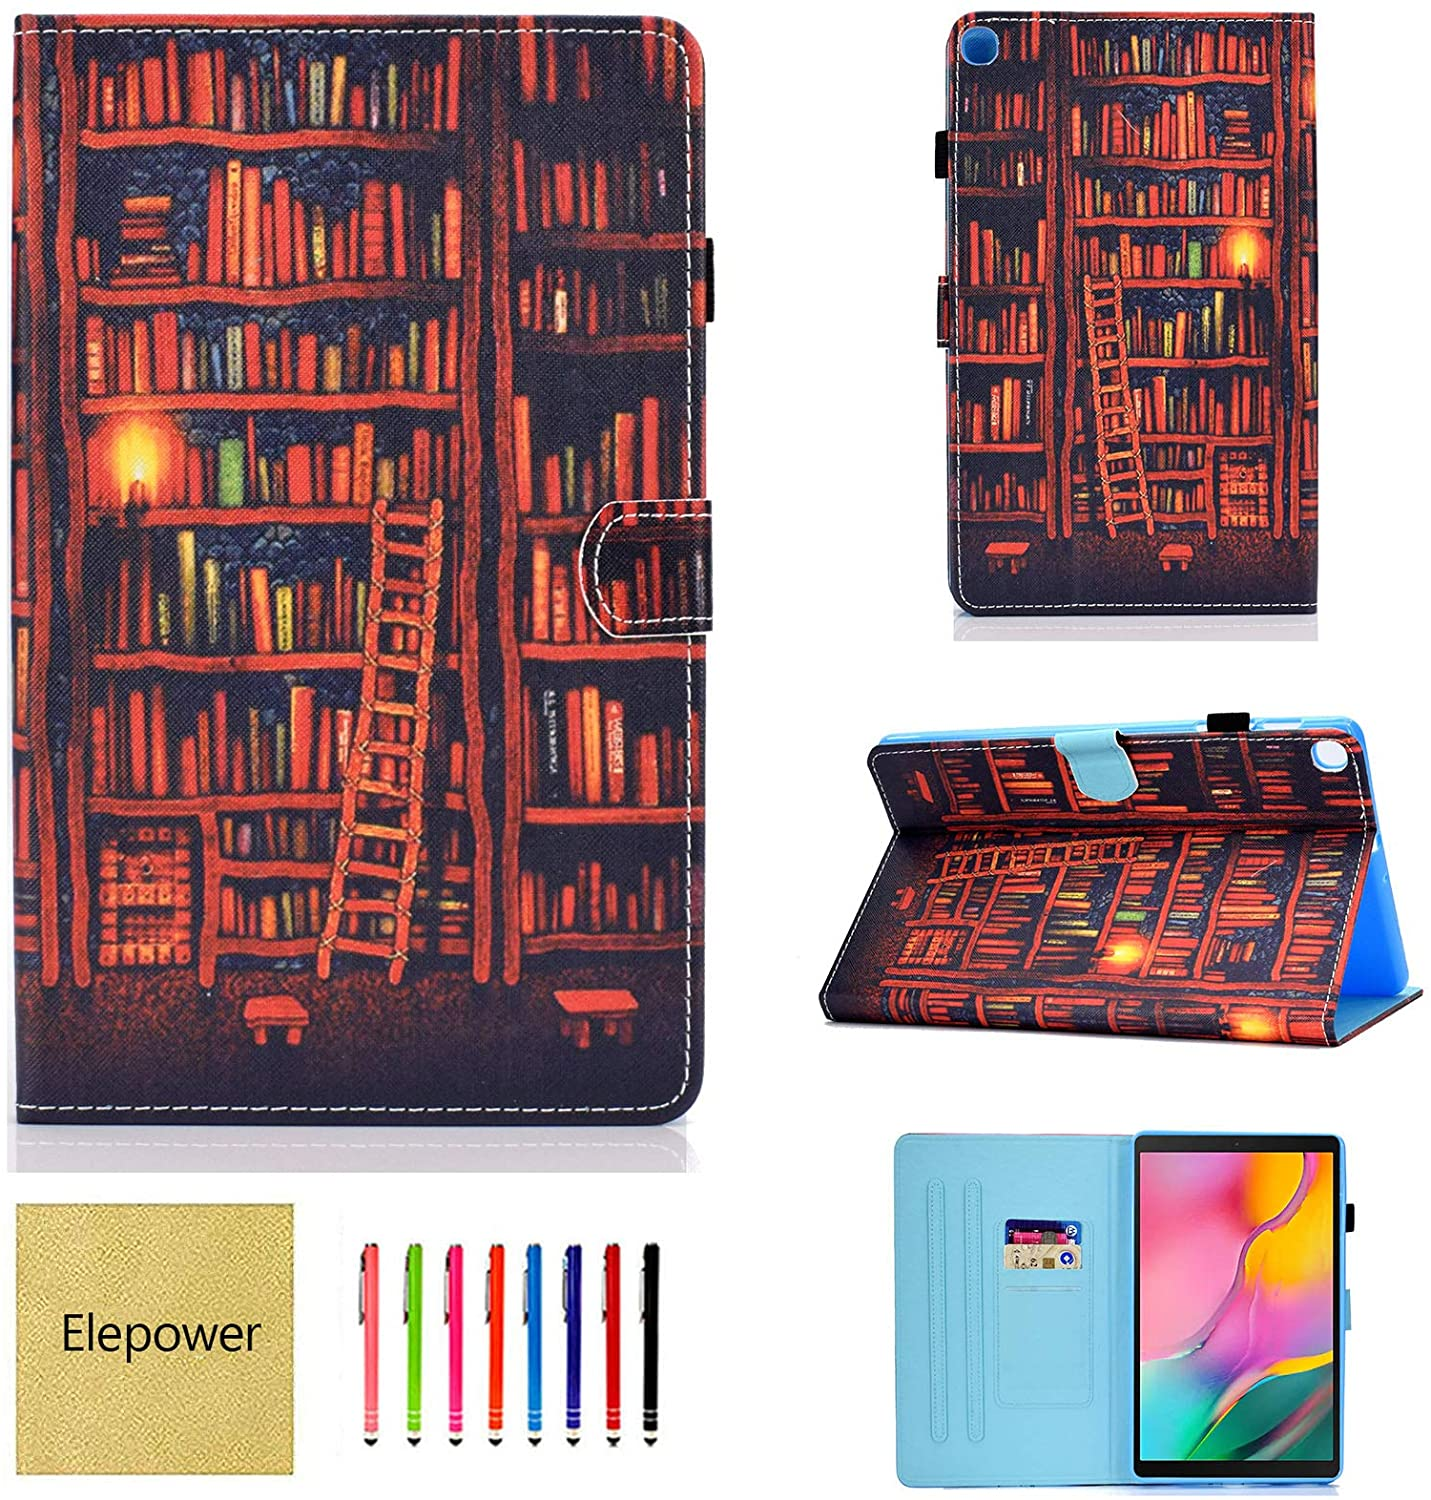 Galaxy Tab A 10.1 Case 2019 Release SM-T510/T515, Elepower Multi-Angle Folio Stand PU Leather Cute Pattern Case Wallet Cover with Card Slots for Samsung Galaxy Tab A 10.1 Inch Tablet, Bookshelf